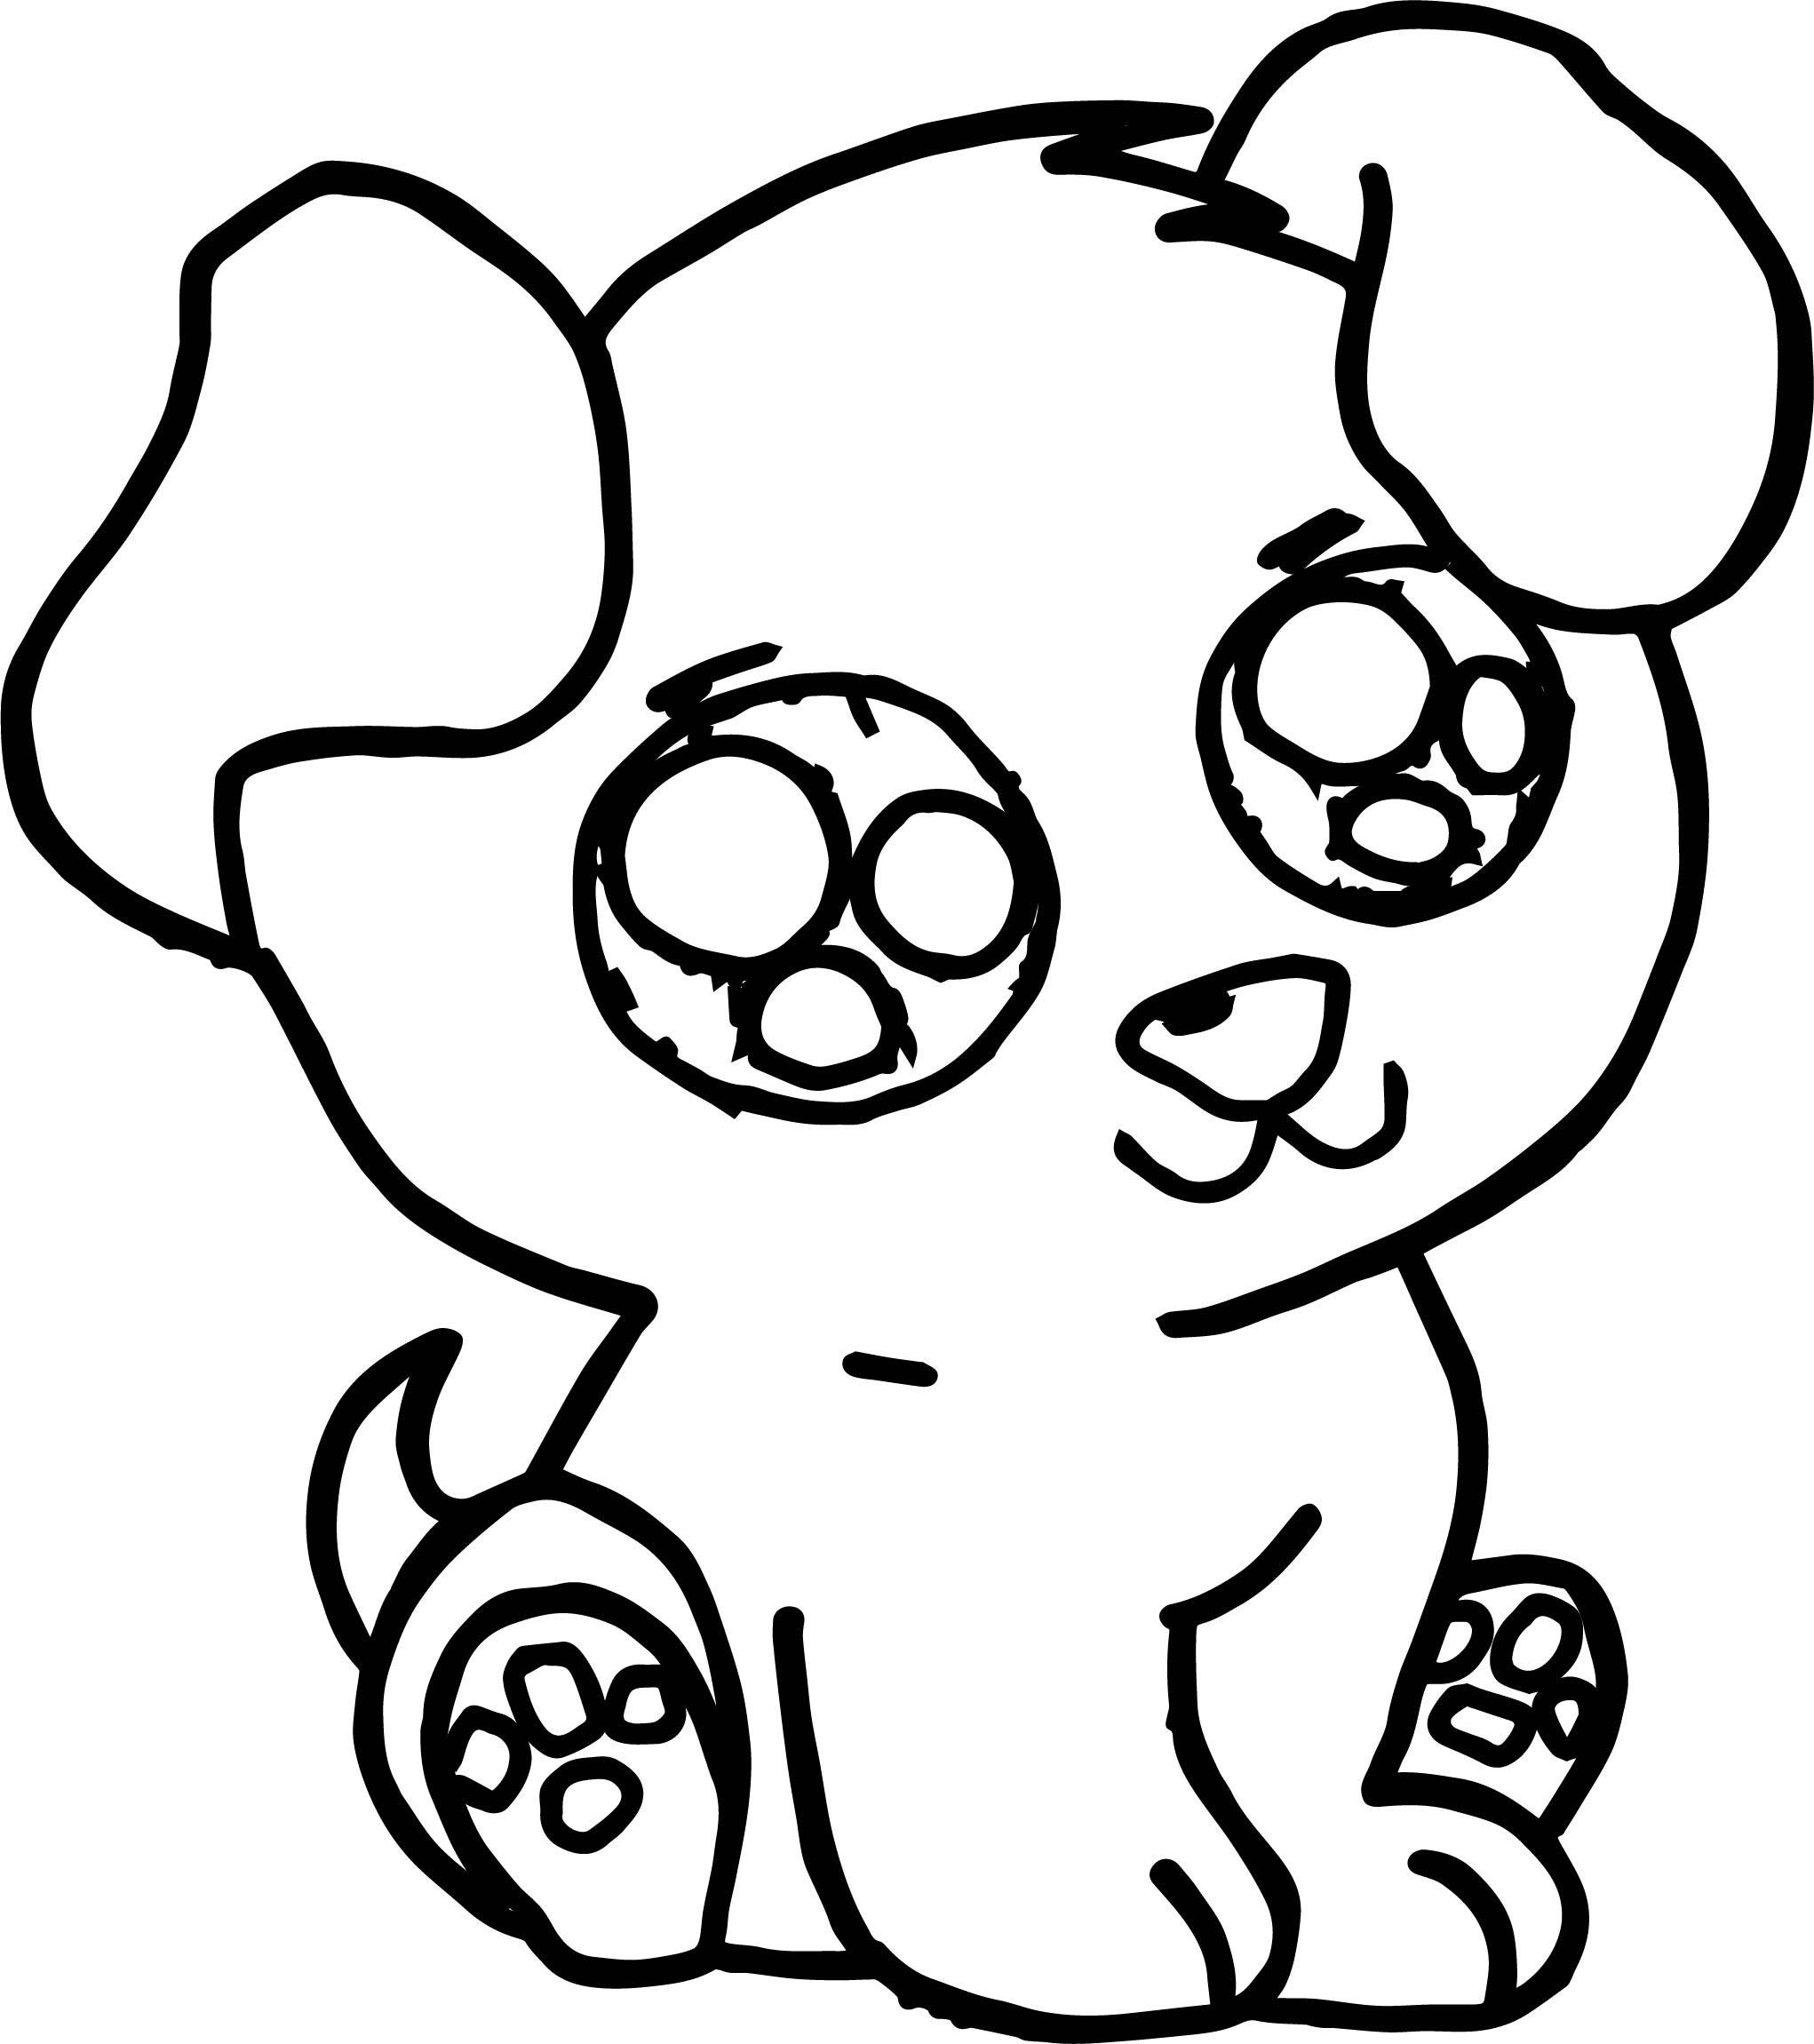 Give your child dog coloring pages and make him happy - Dogalize   2301x2042